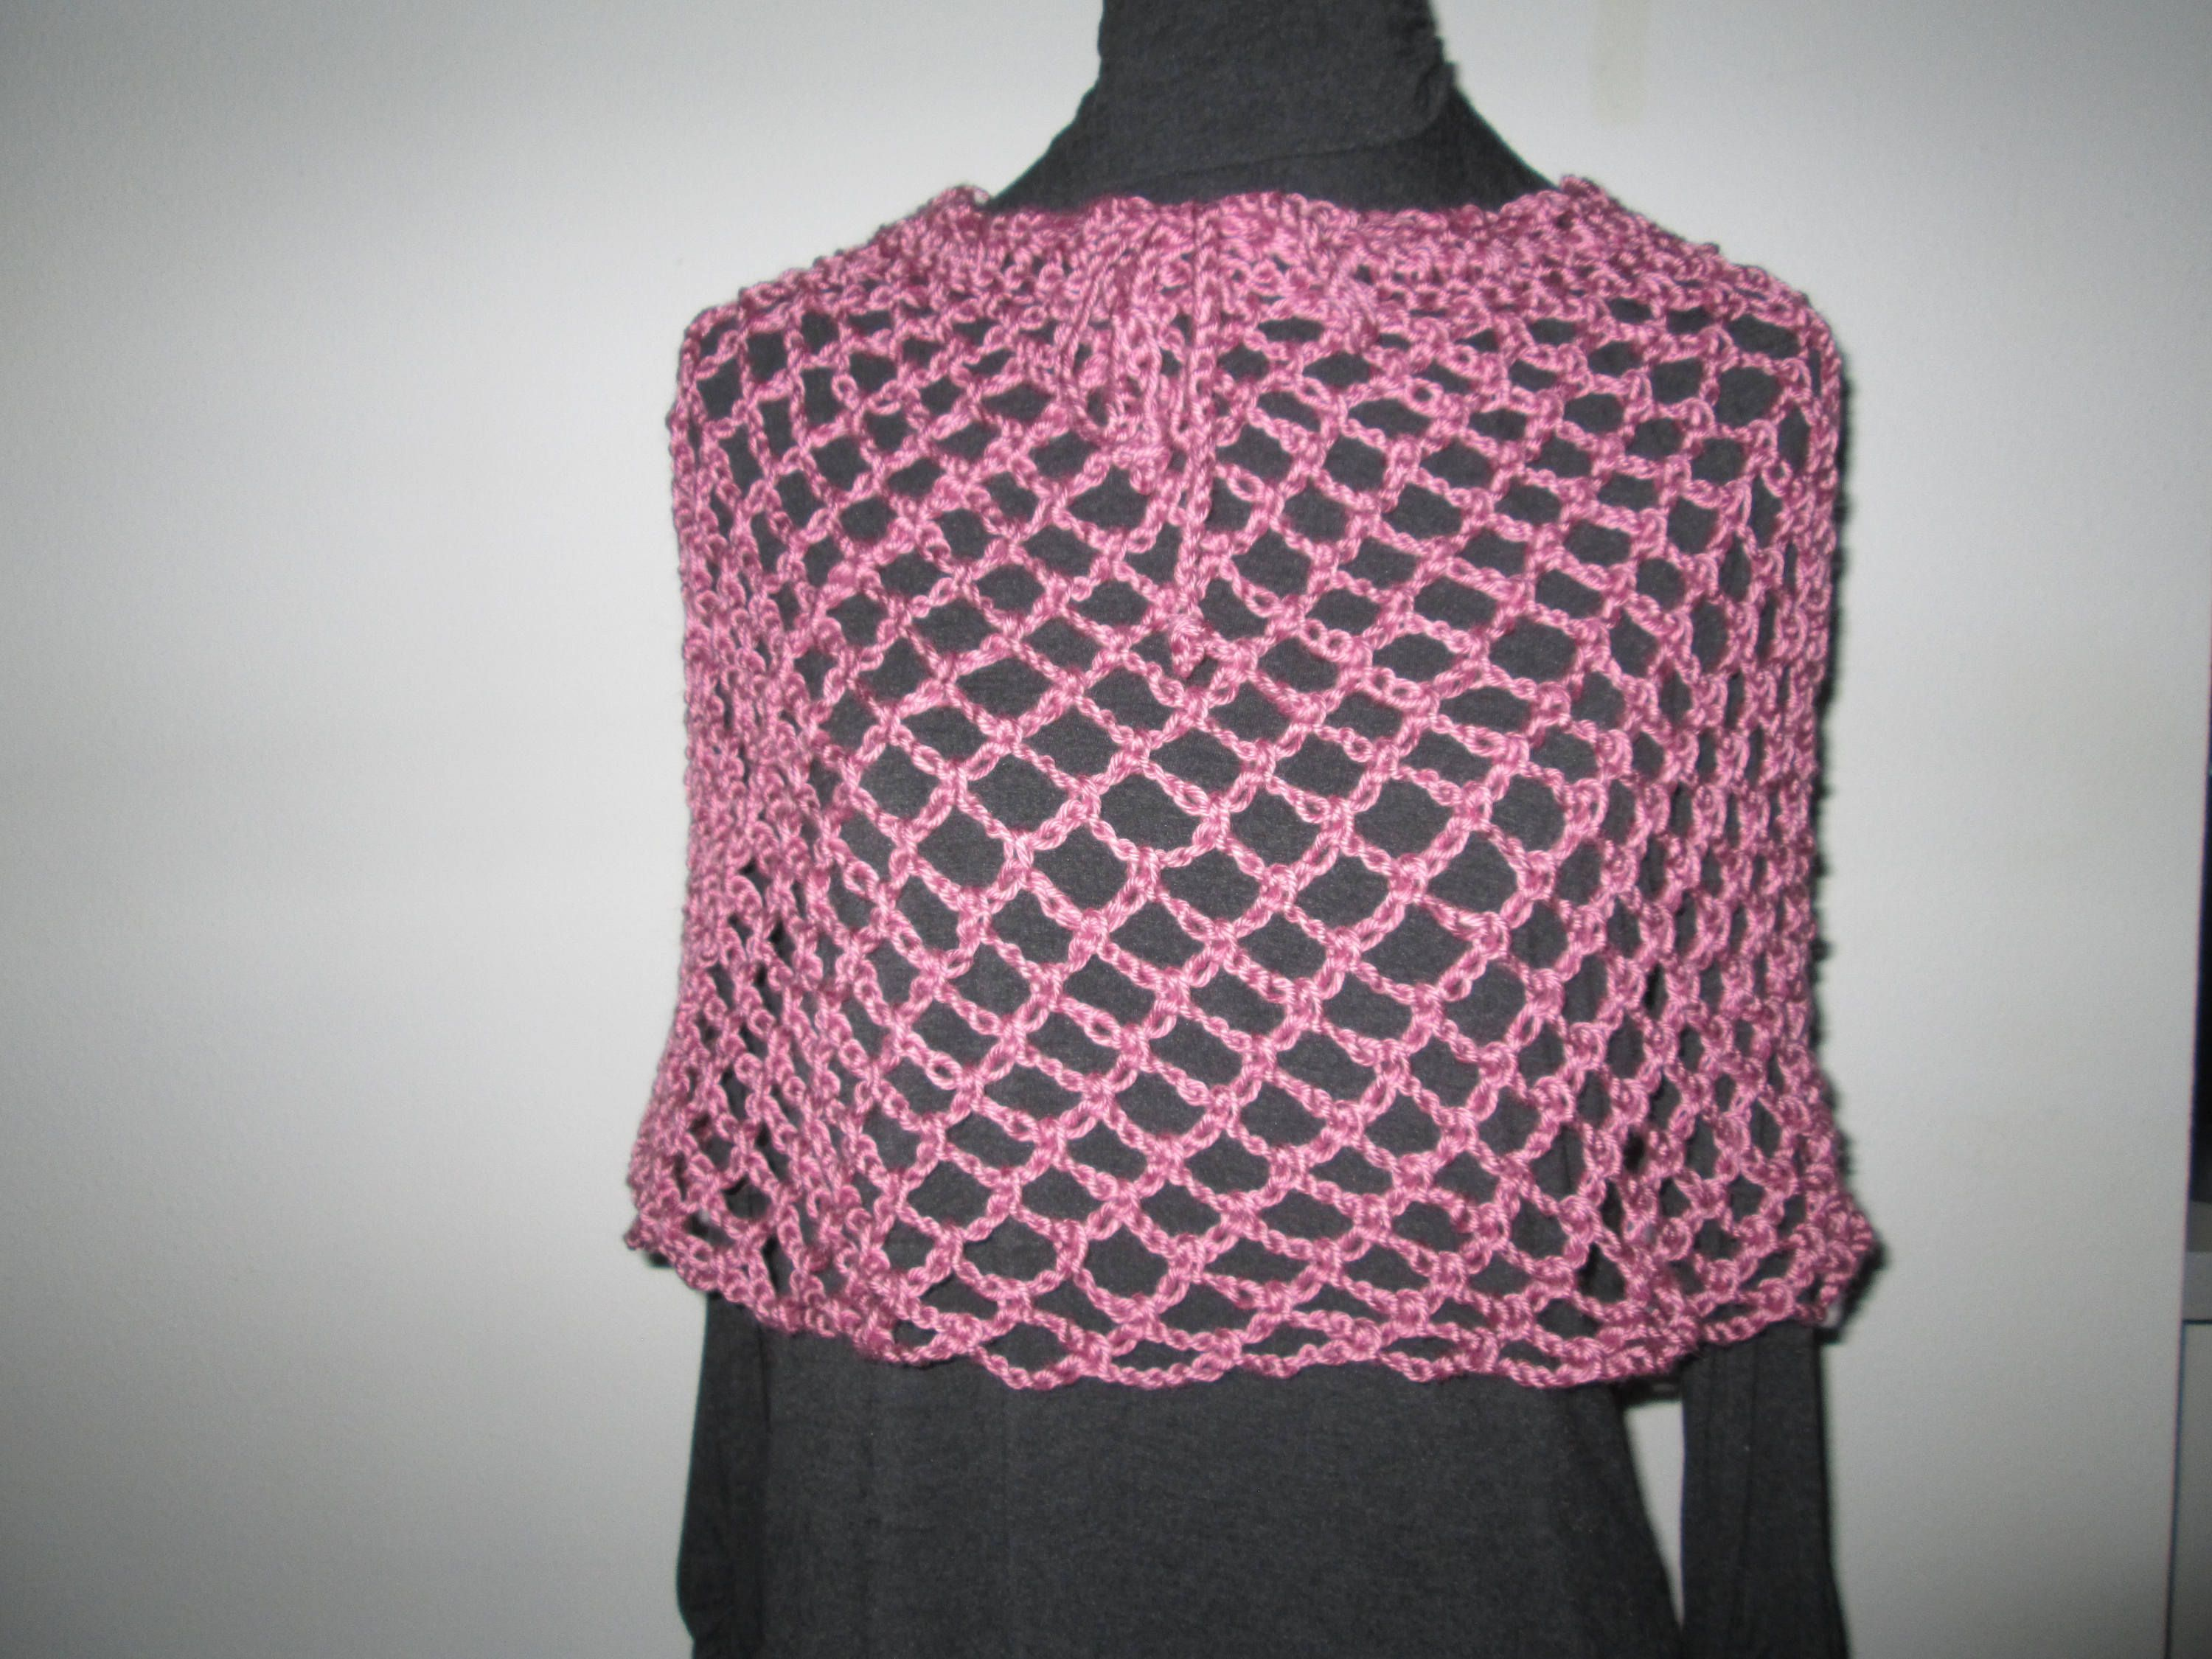 e8c411d7090c Girl s Dusty Rose Poncho Skirt Crocheted by SuzannesStitches